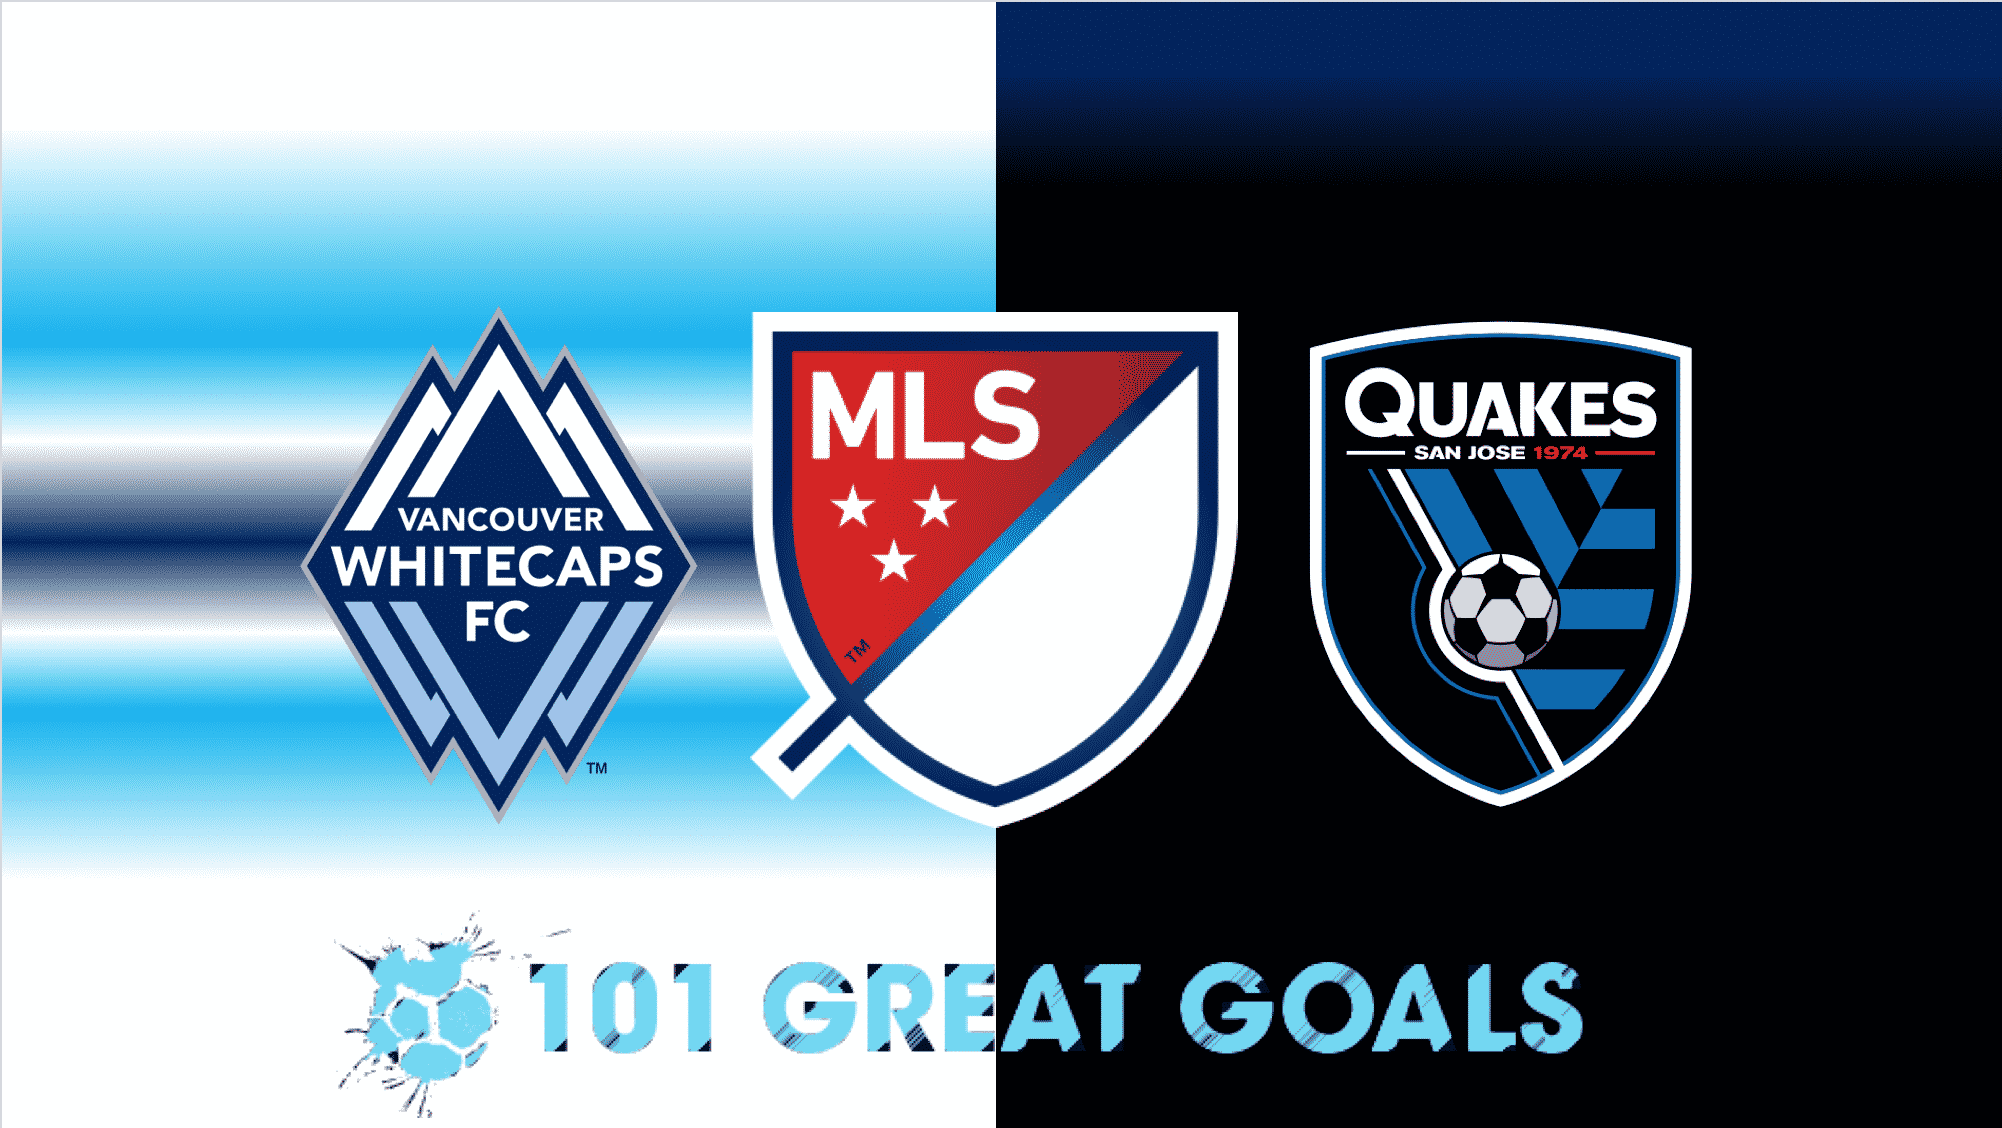 Vancouver Whitecaps vs San Jose Earthquakes live streaming